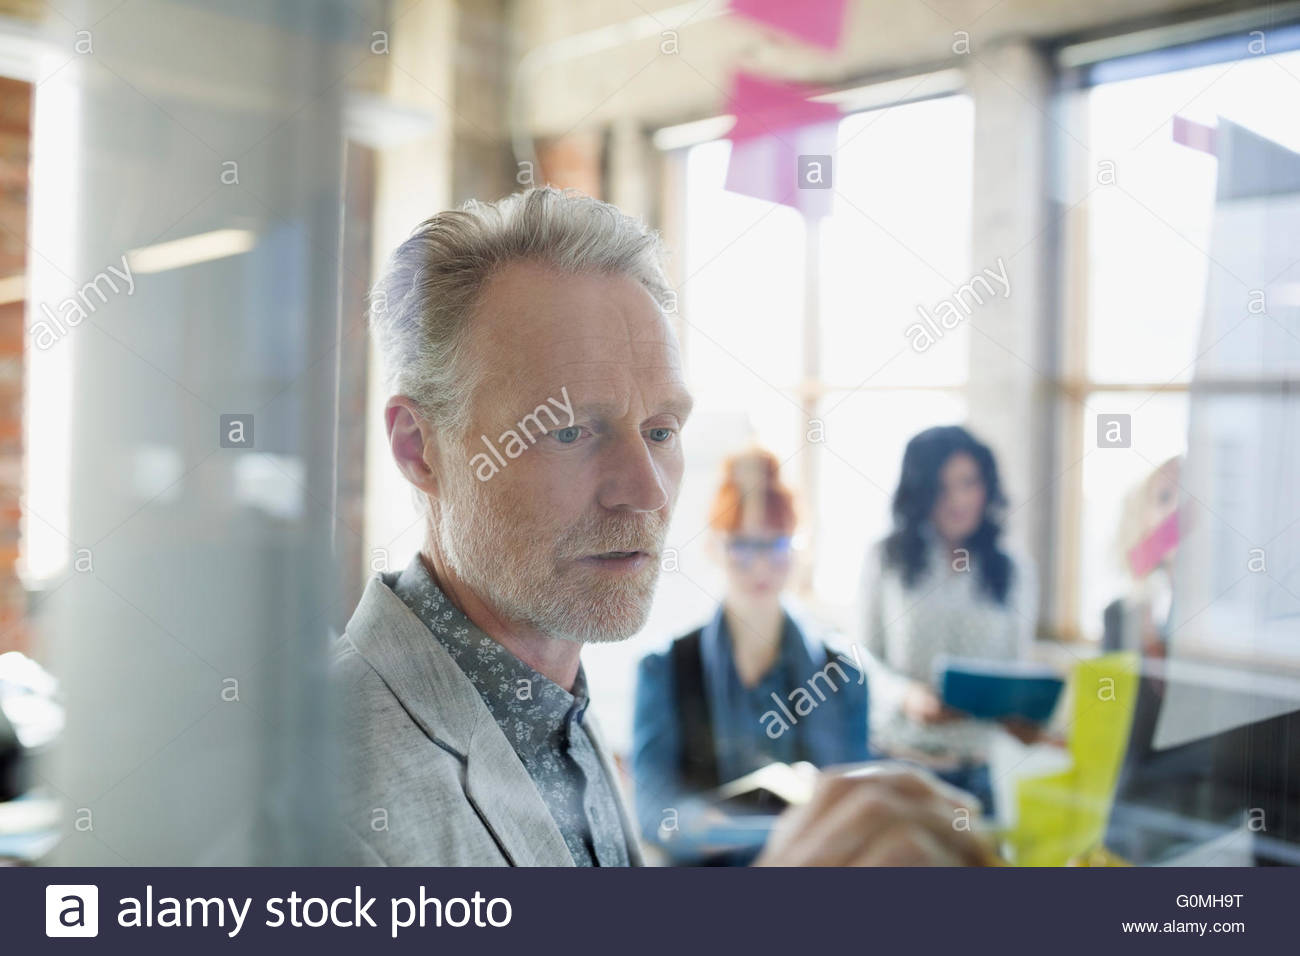 Businessman writing on adhesive note on office glass - Stock Image